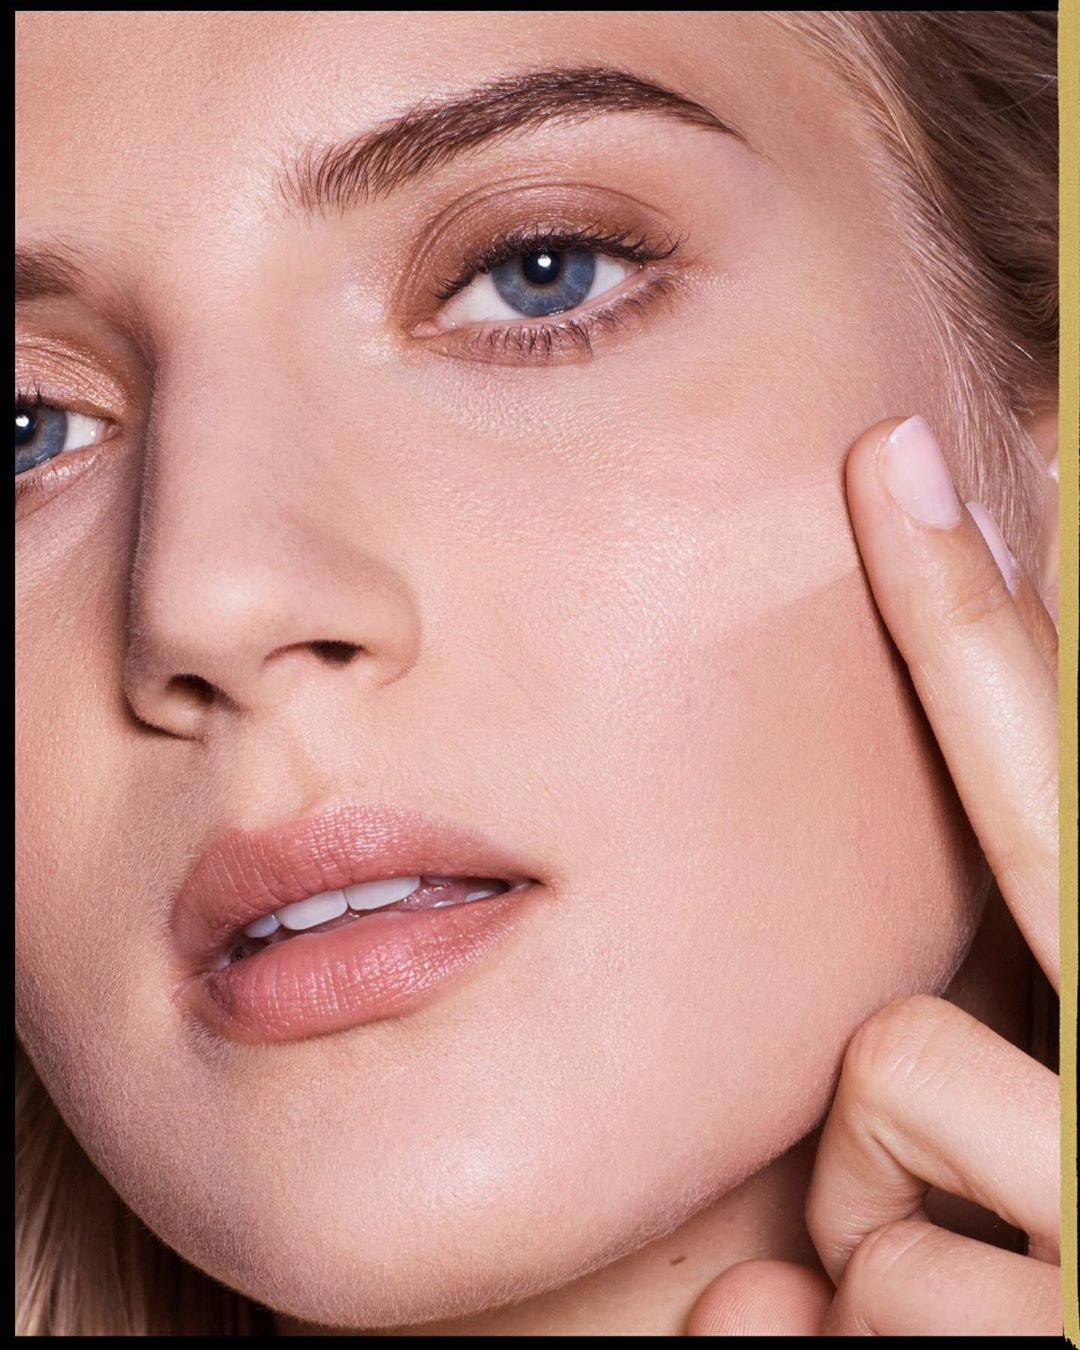 Max Factor - How to use  Miracle Second Skin foundation in a few steps : 1.  Find your shade (it's available in 13 different shades) 2. Apply a small amount of foundation to your fingertips 3. Apply t...